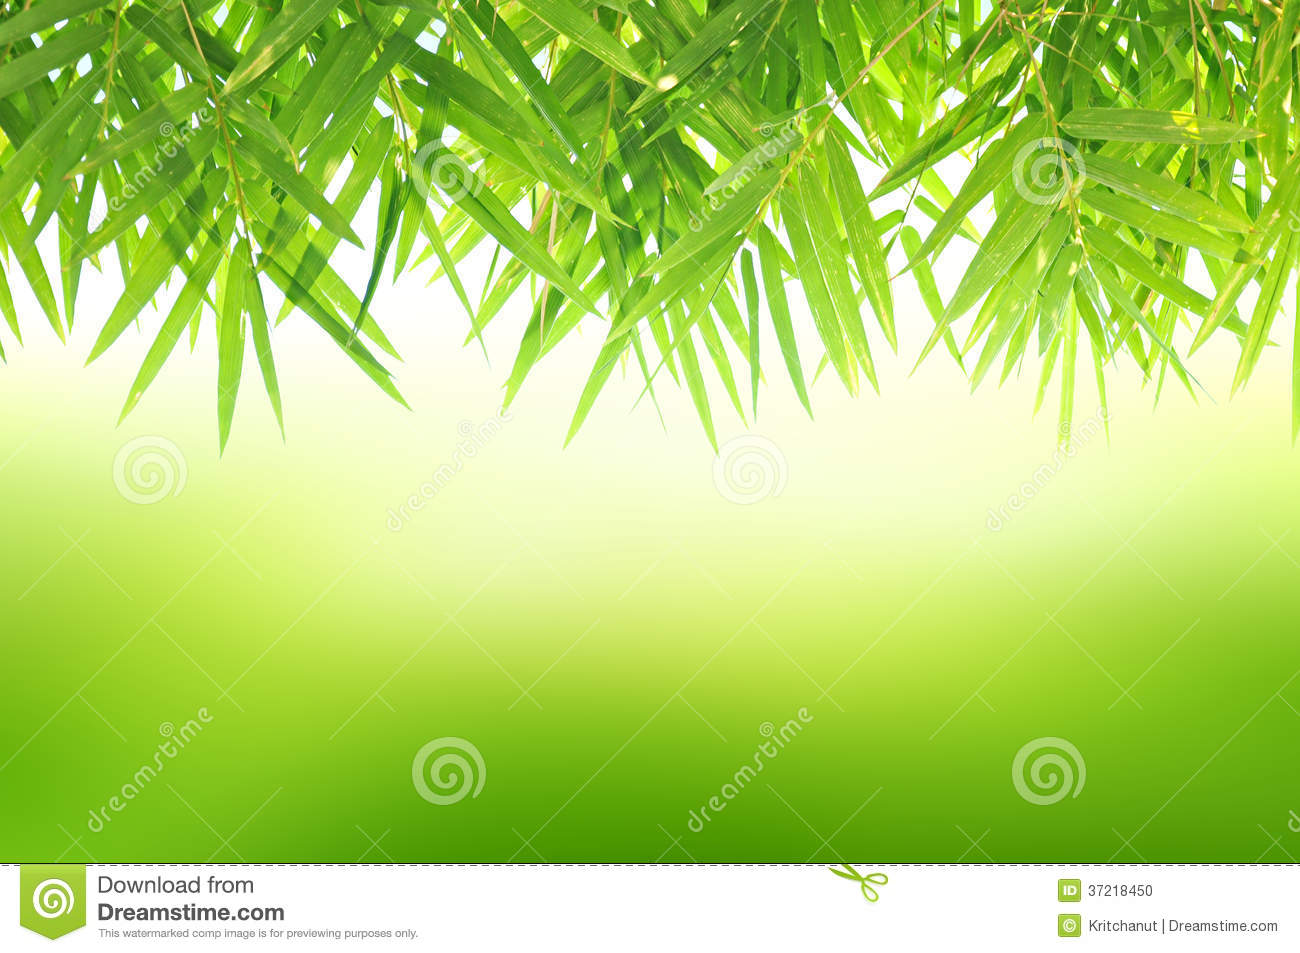 Autumn Falling Leaves Wallpaper Green Natural Background With Bamboo Leaves Stock Photo